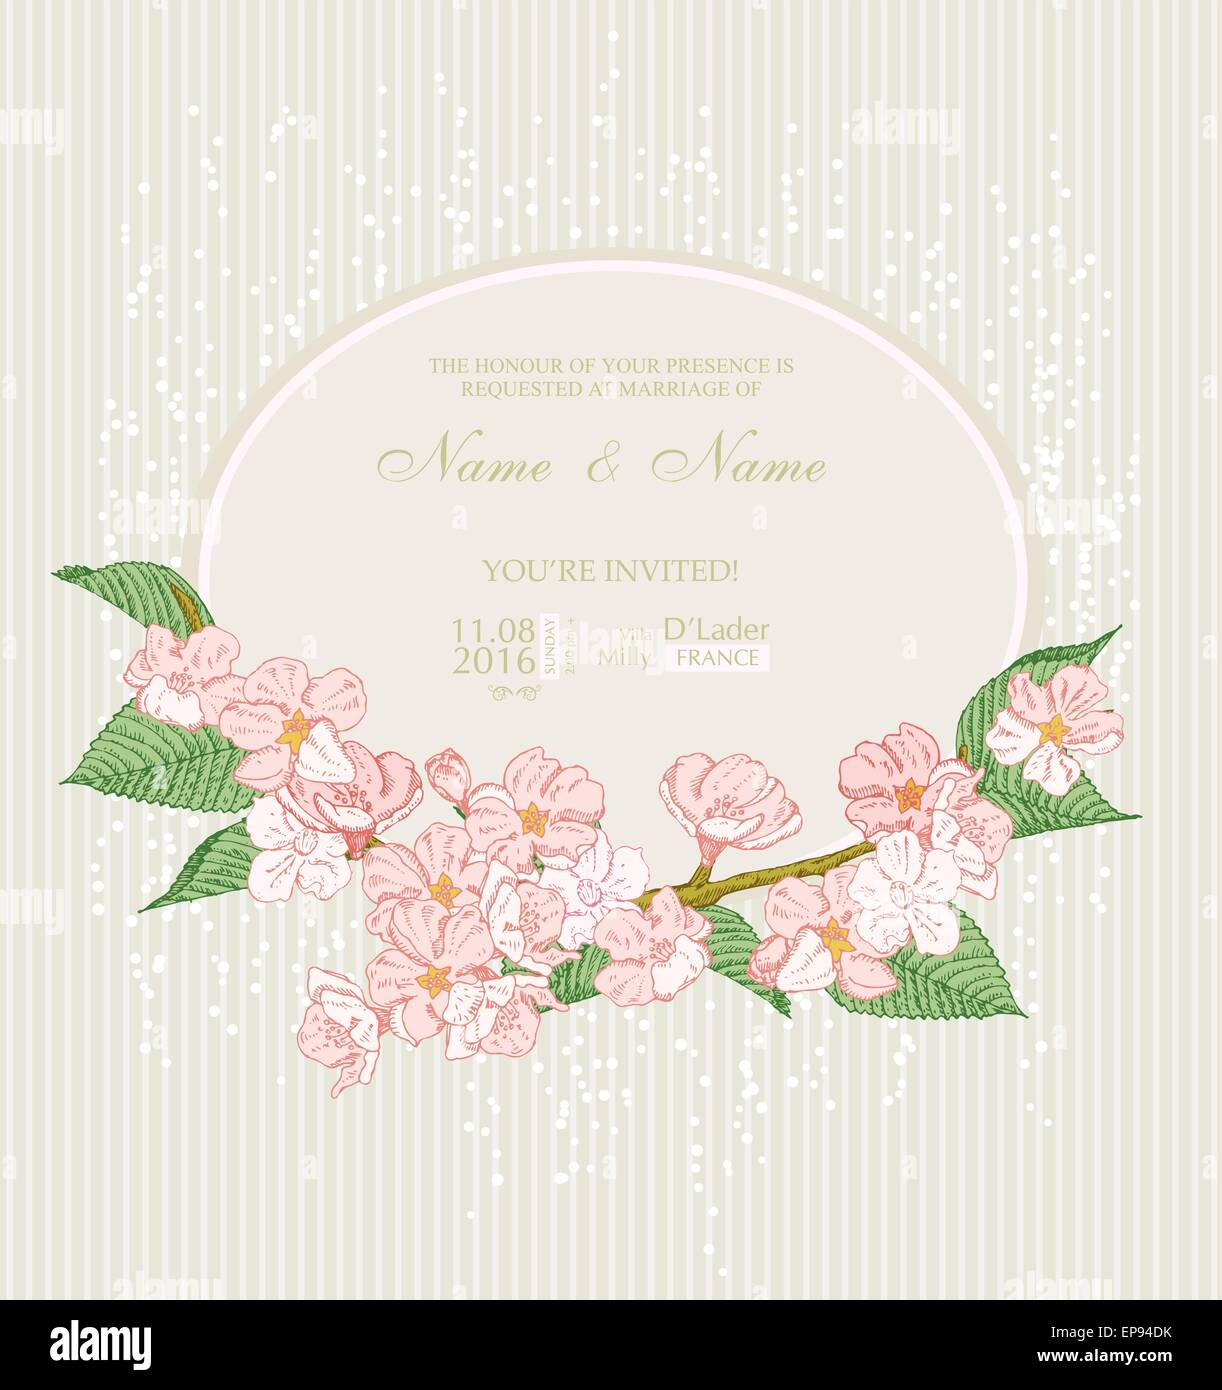 Wedding invitation with flowers spring apple blossom floral wedding invitation with flowers spring apple blossom floral background in vintage style stopboris Image collections